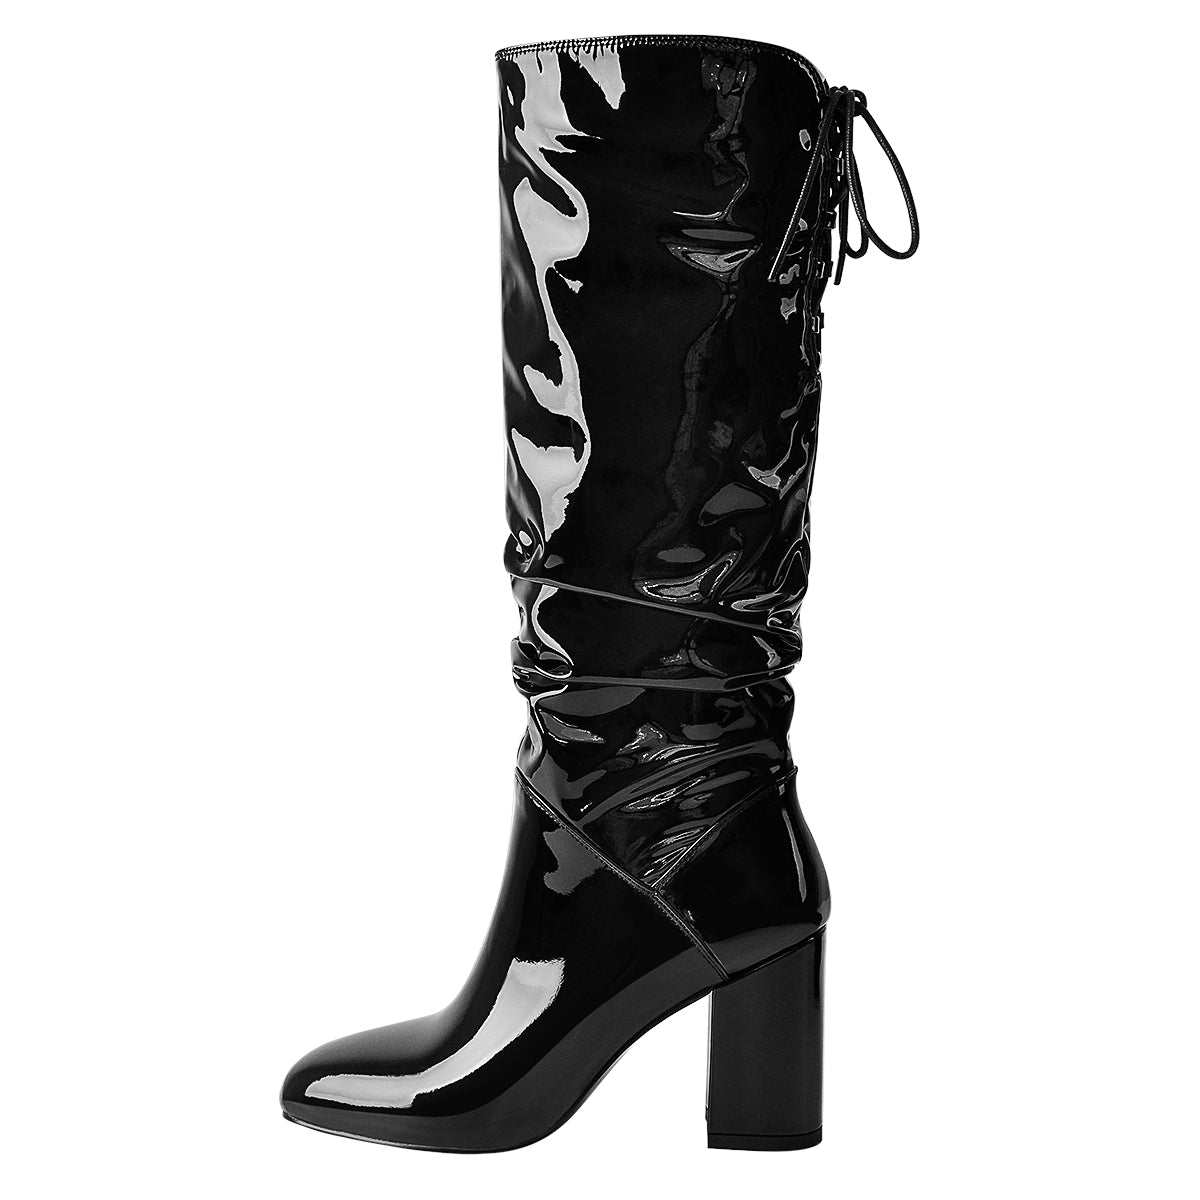 Black Patent Leather Chunky Heels Boots